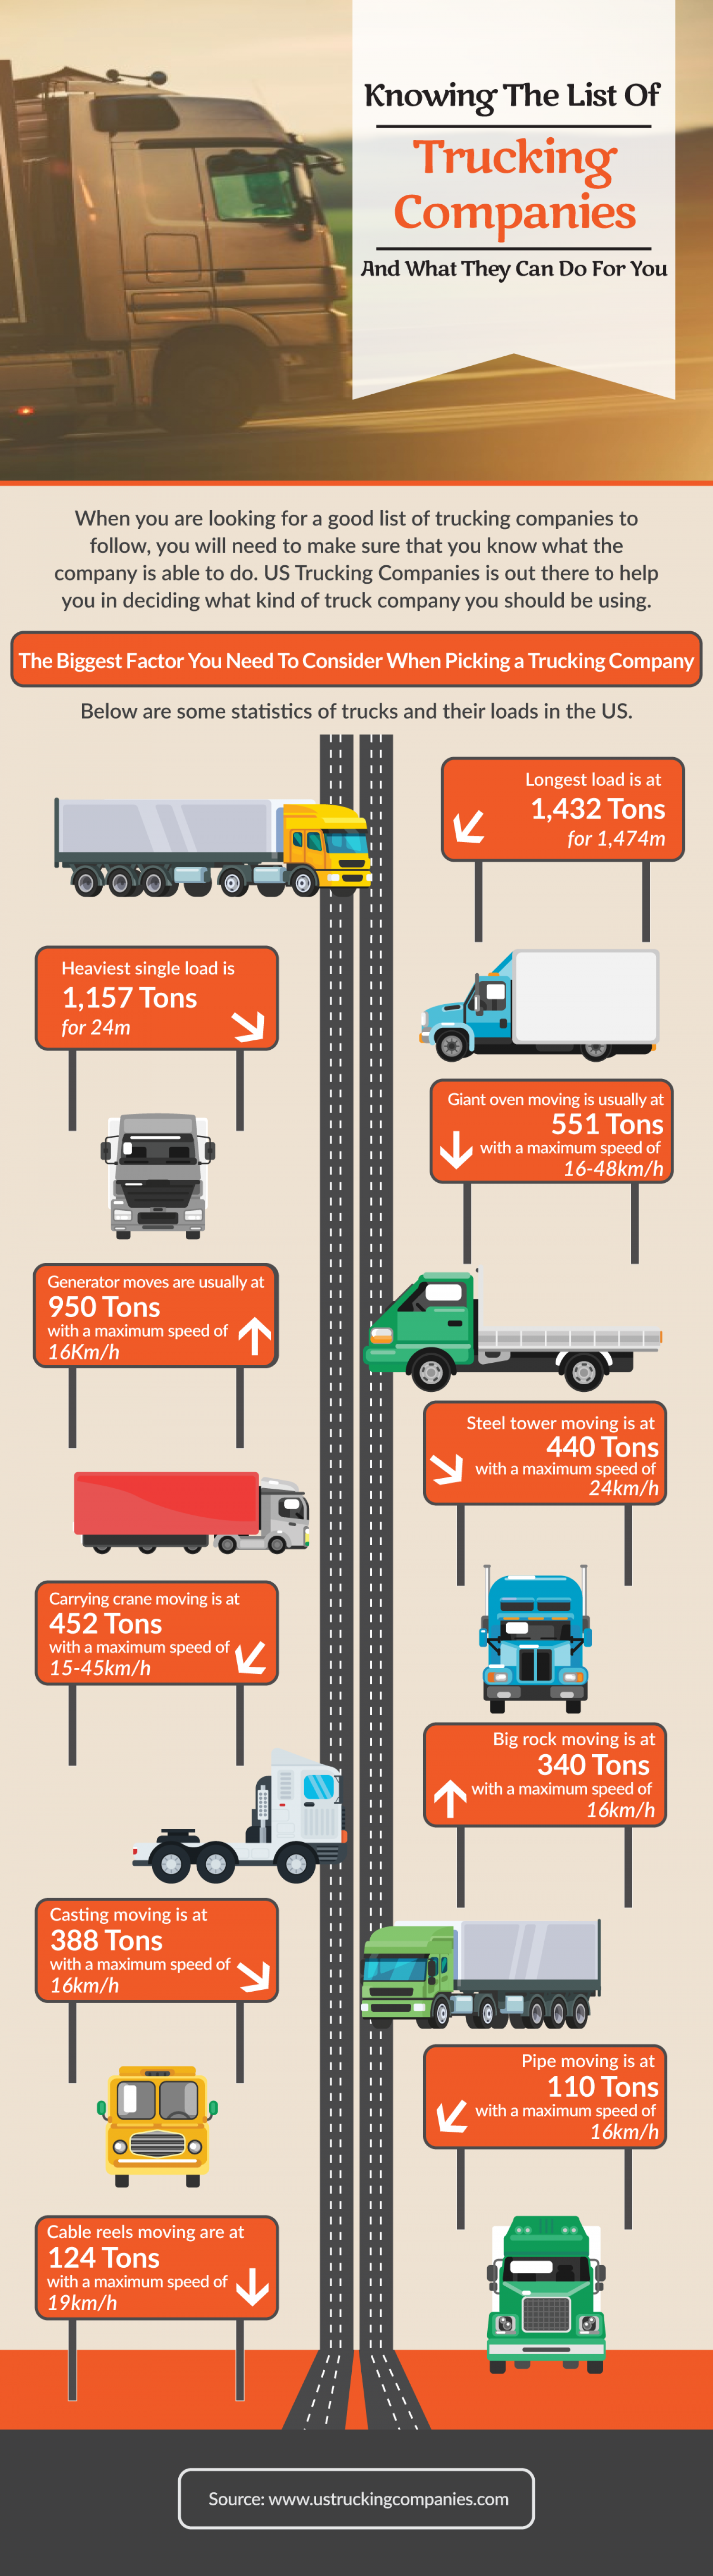 list of trucking companies Infographic